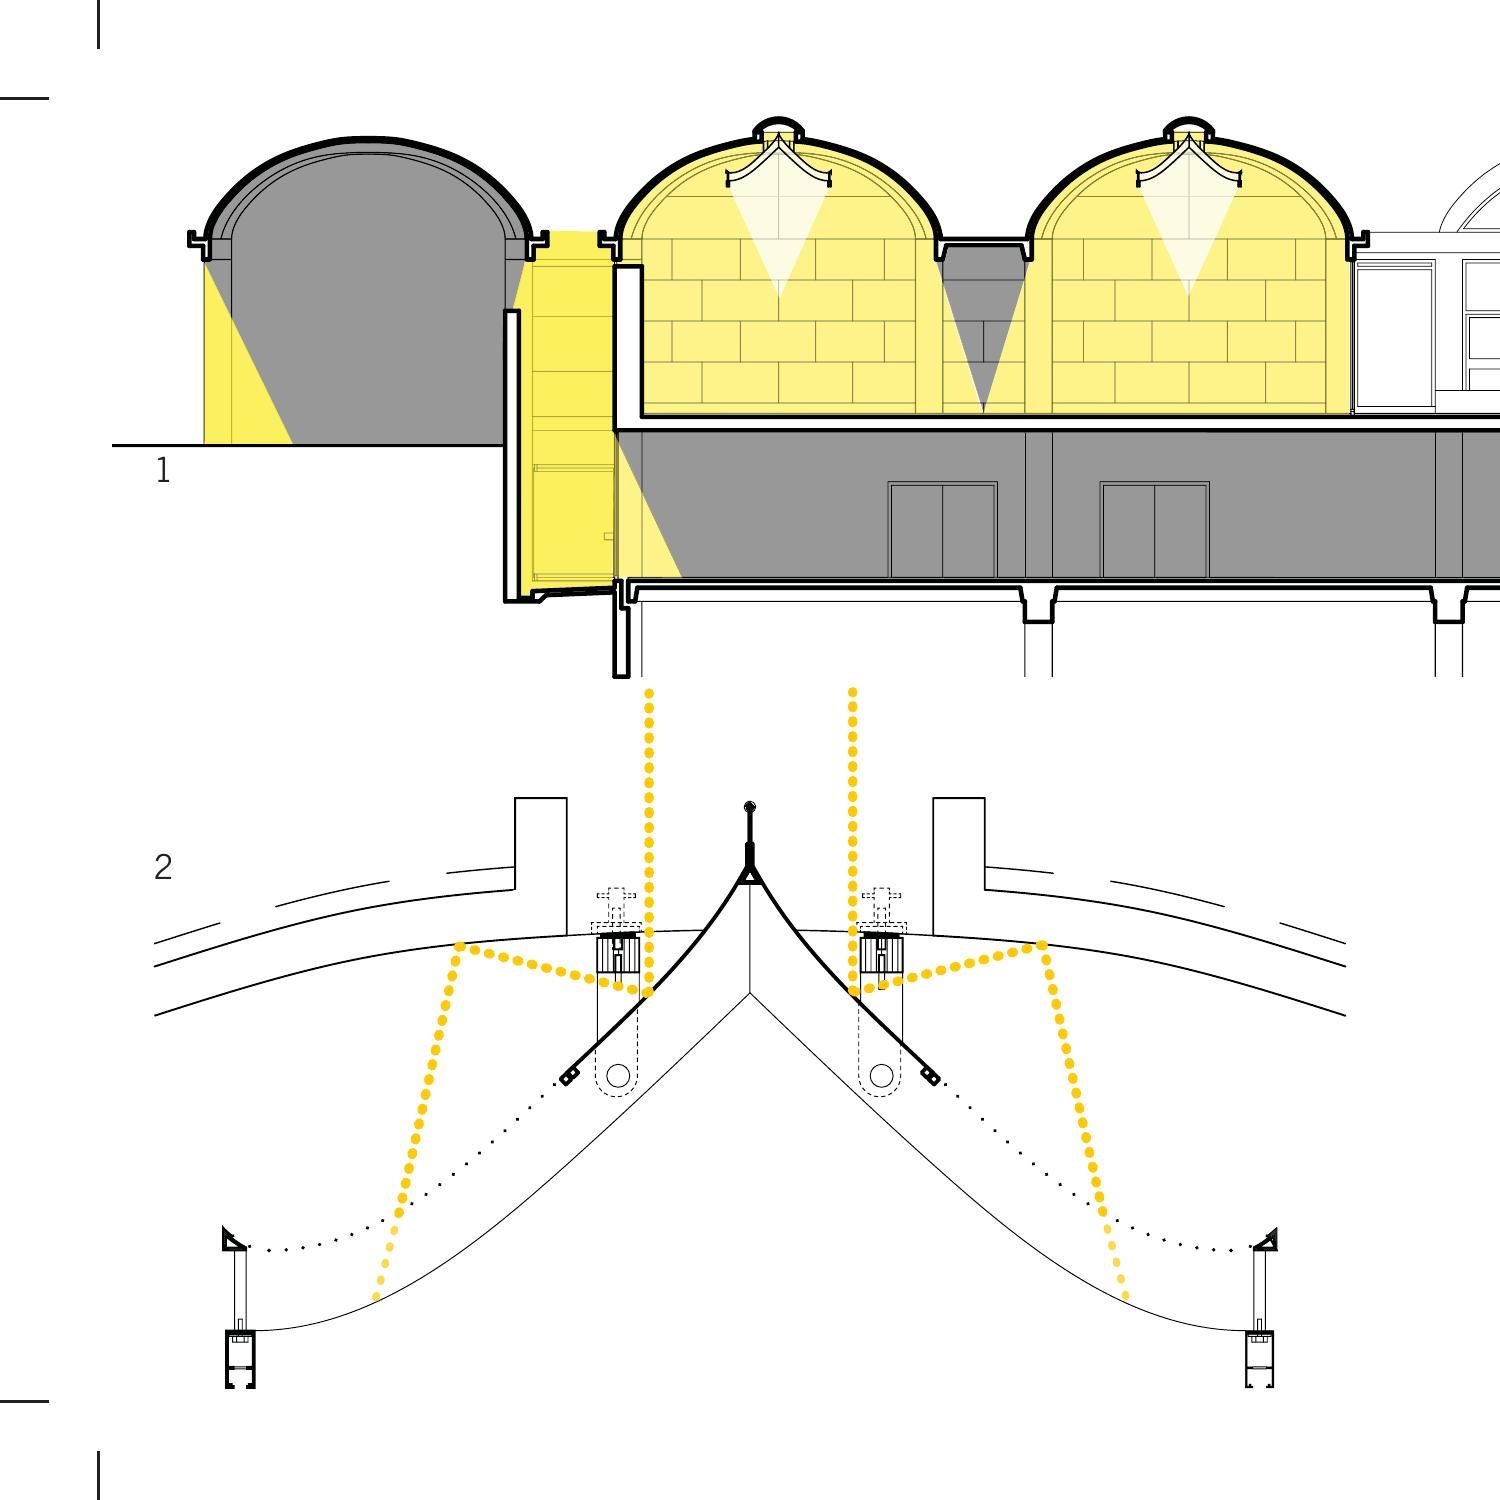 lighting architecture diagram how to wire electric fence case study kimbell art museum louis kahn pinterest